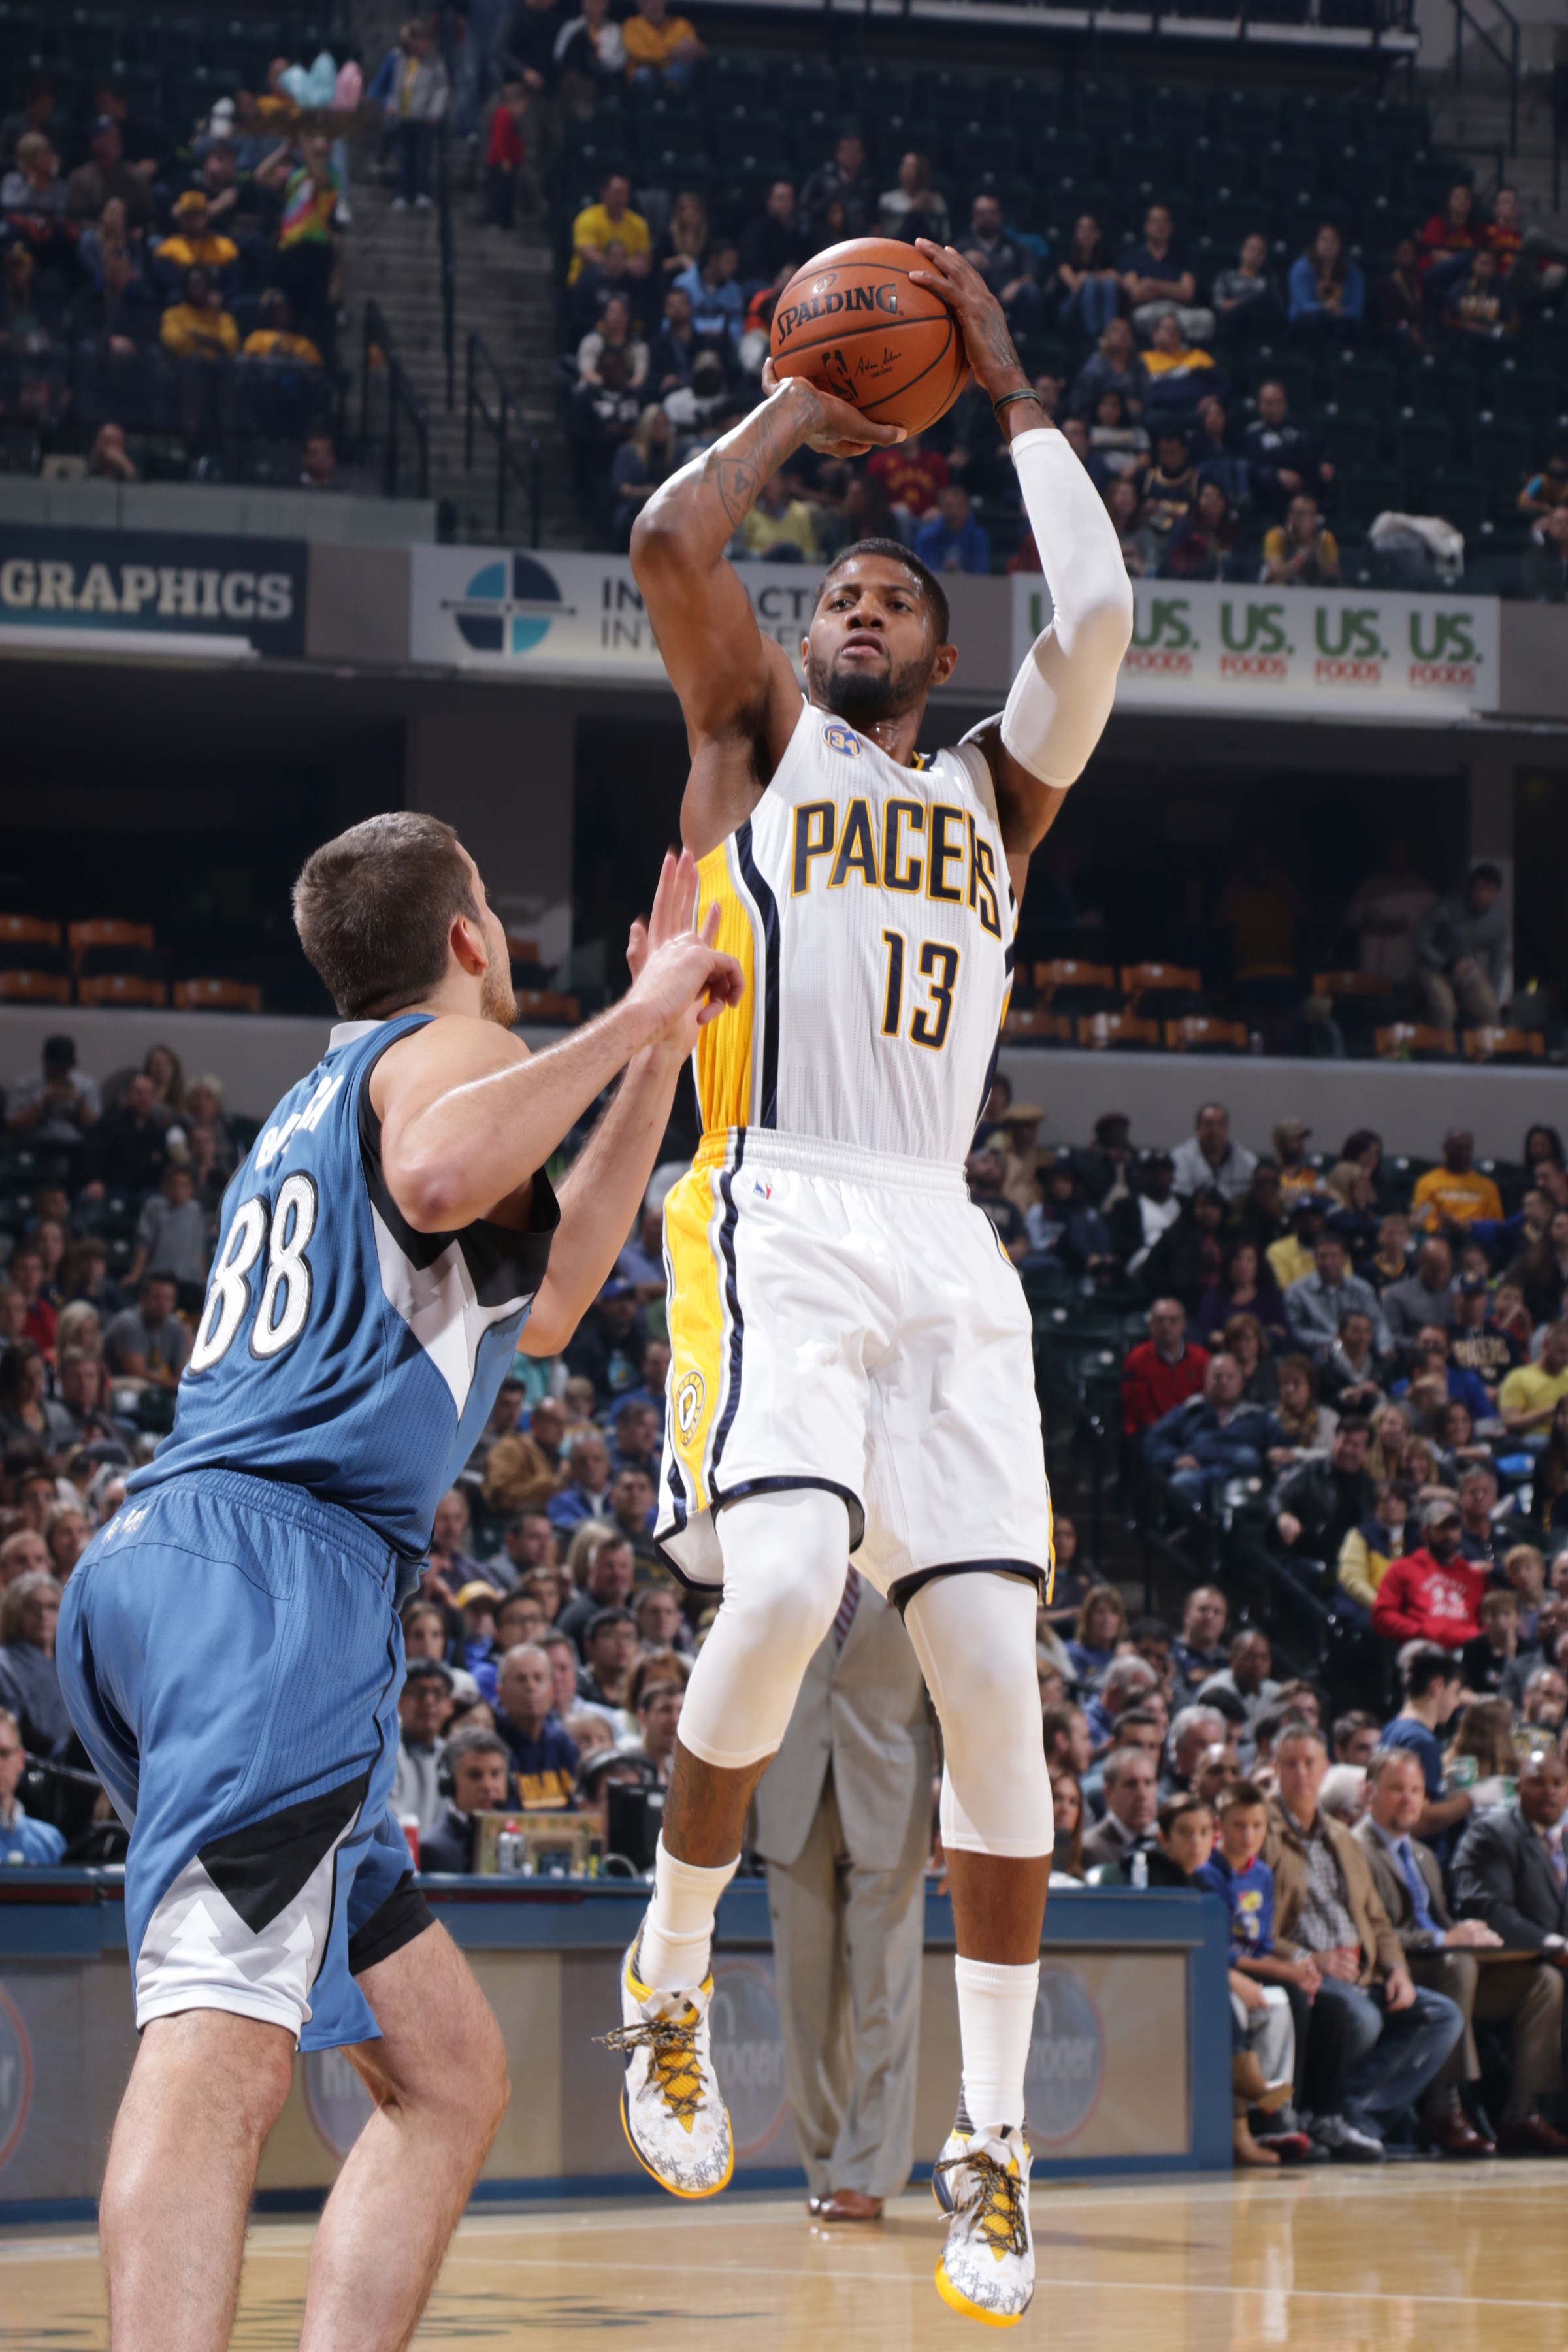 INDIANAPOLIS - NOVEMBER 13: Paul George #13 of the Indiana Pacers shoots the ball against the Minnesota Timberwolves at Bankers Life Fieldhouse on November 13, 2015 in Indianapolis, Indiana.  (Photo by Ron Hoskins/NBAE via Getty Images)